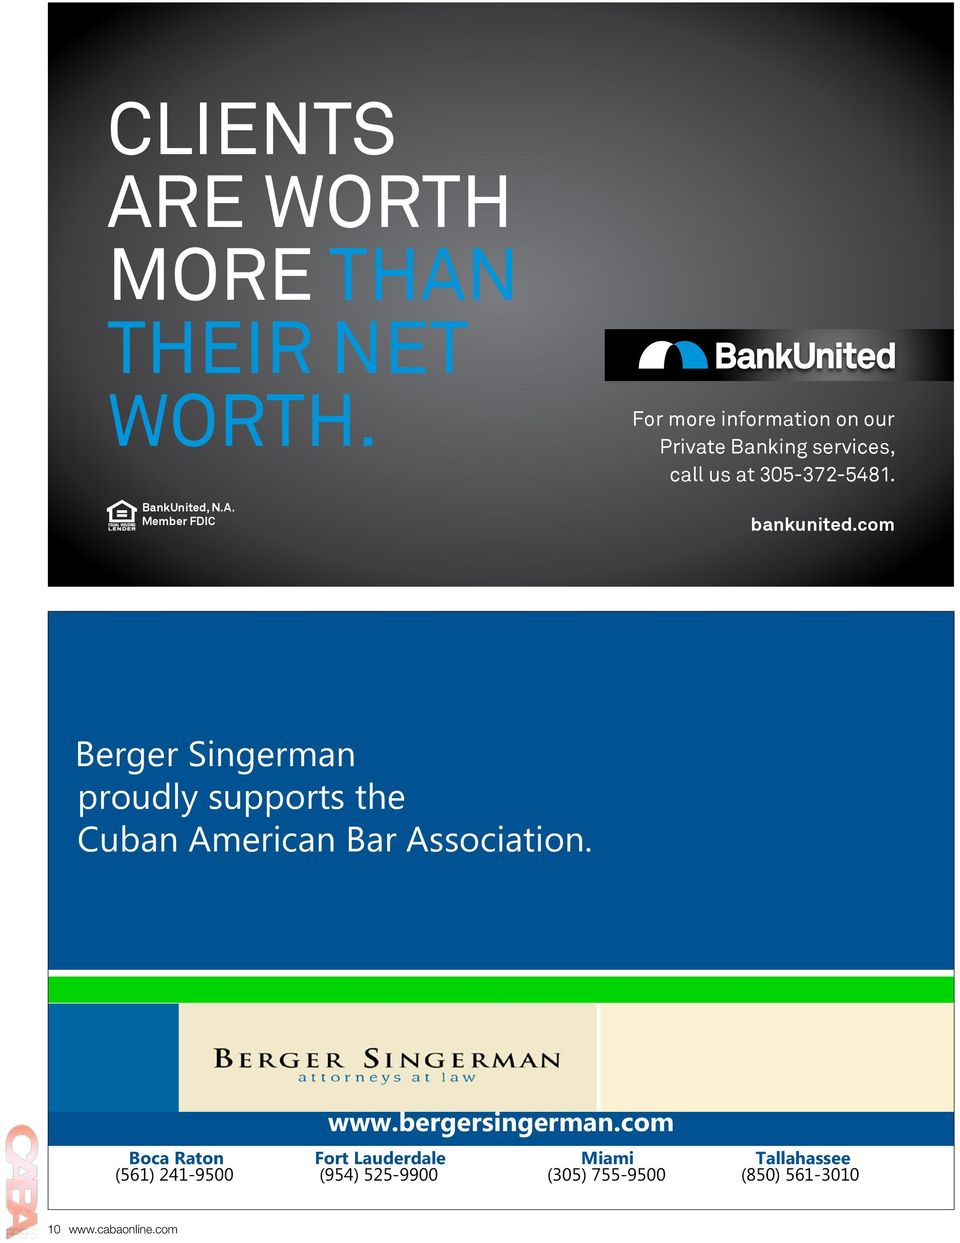 indd 1 3/20/2013 11:10:07 AM Berger Singerman proudly supports the Cuban American Bar Association. www.